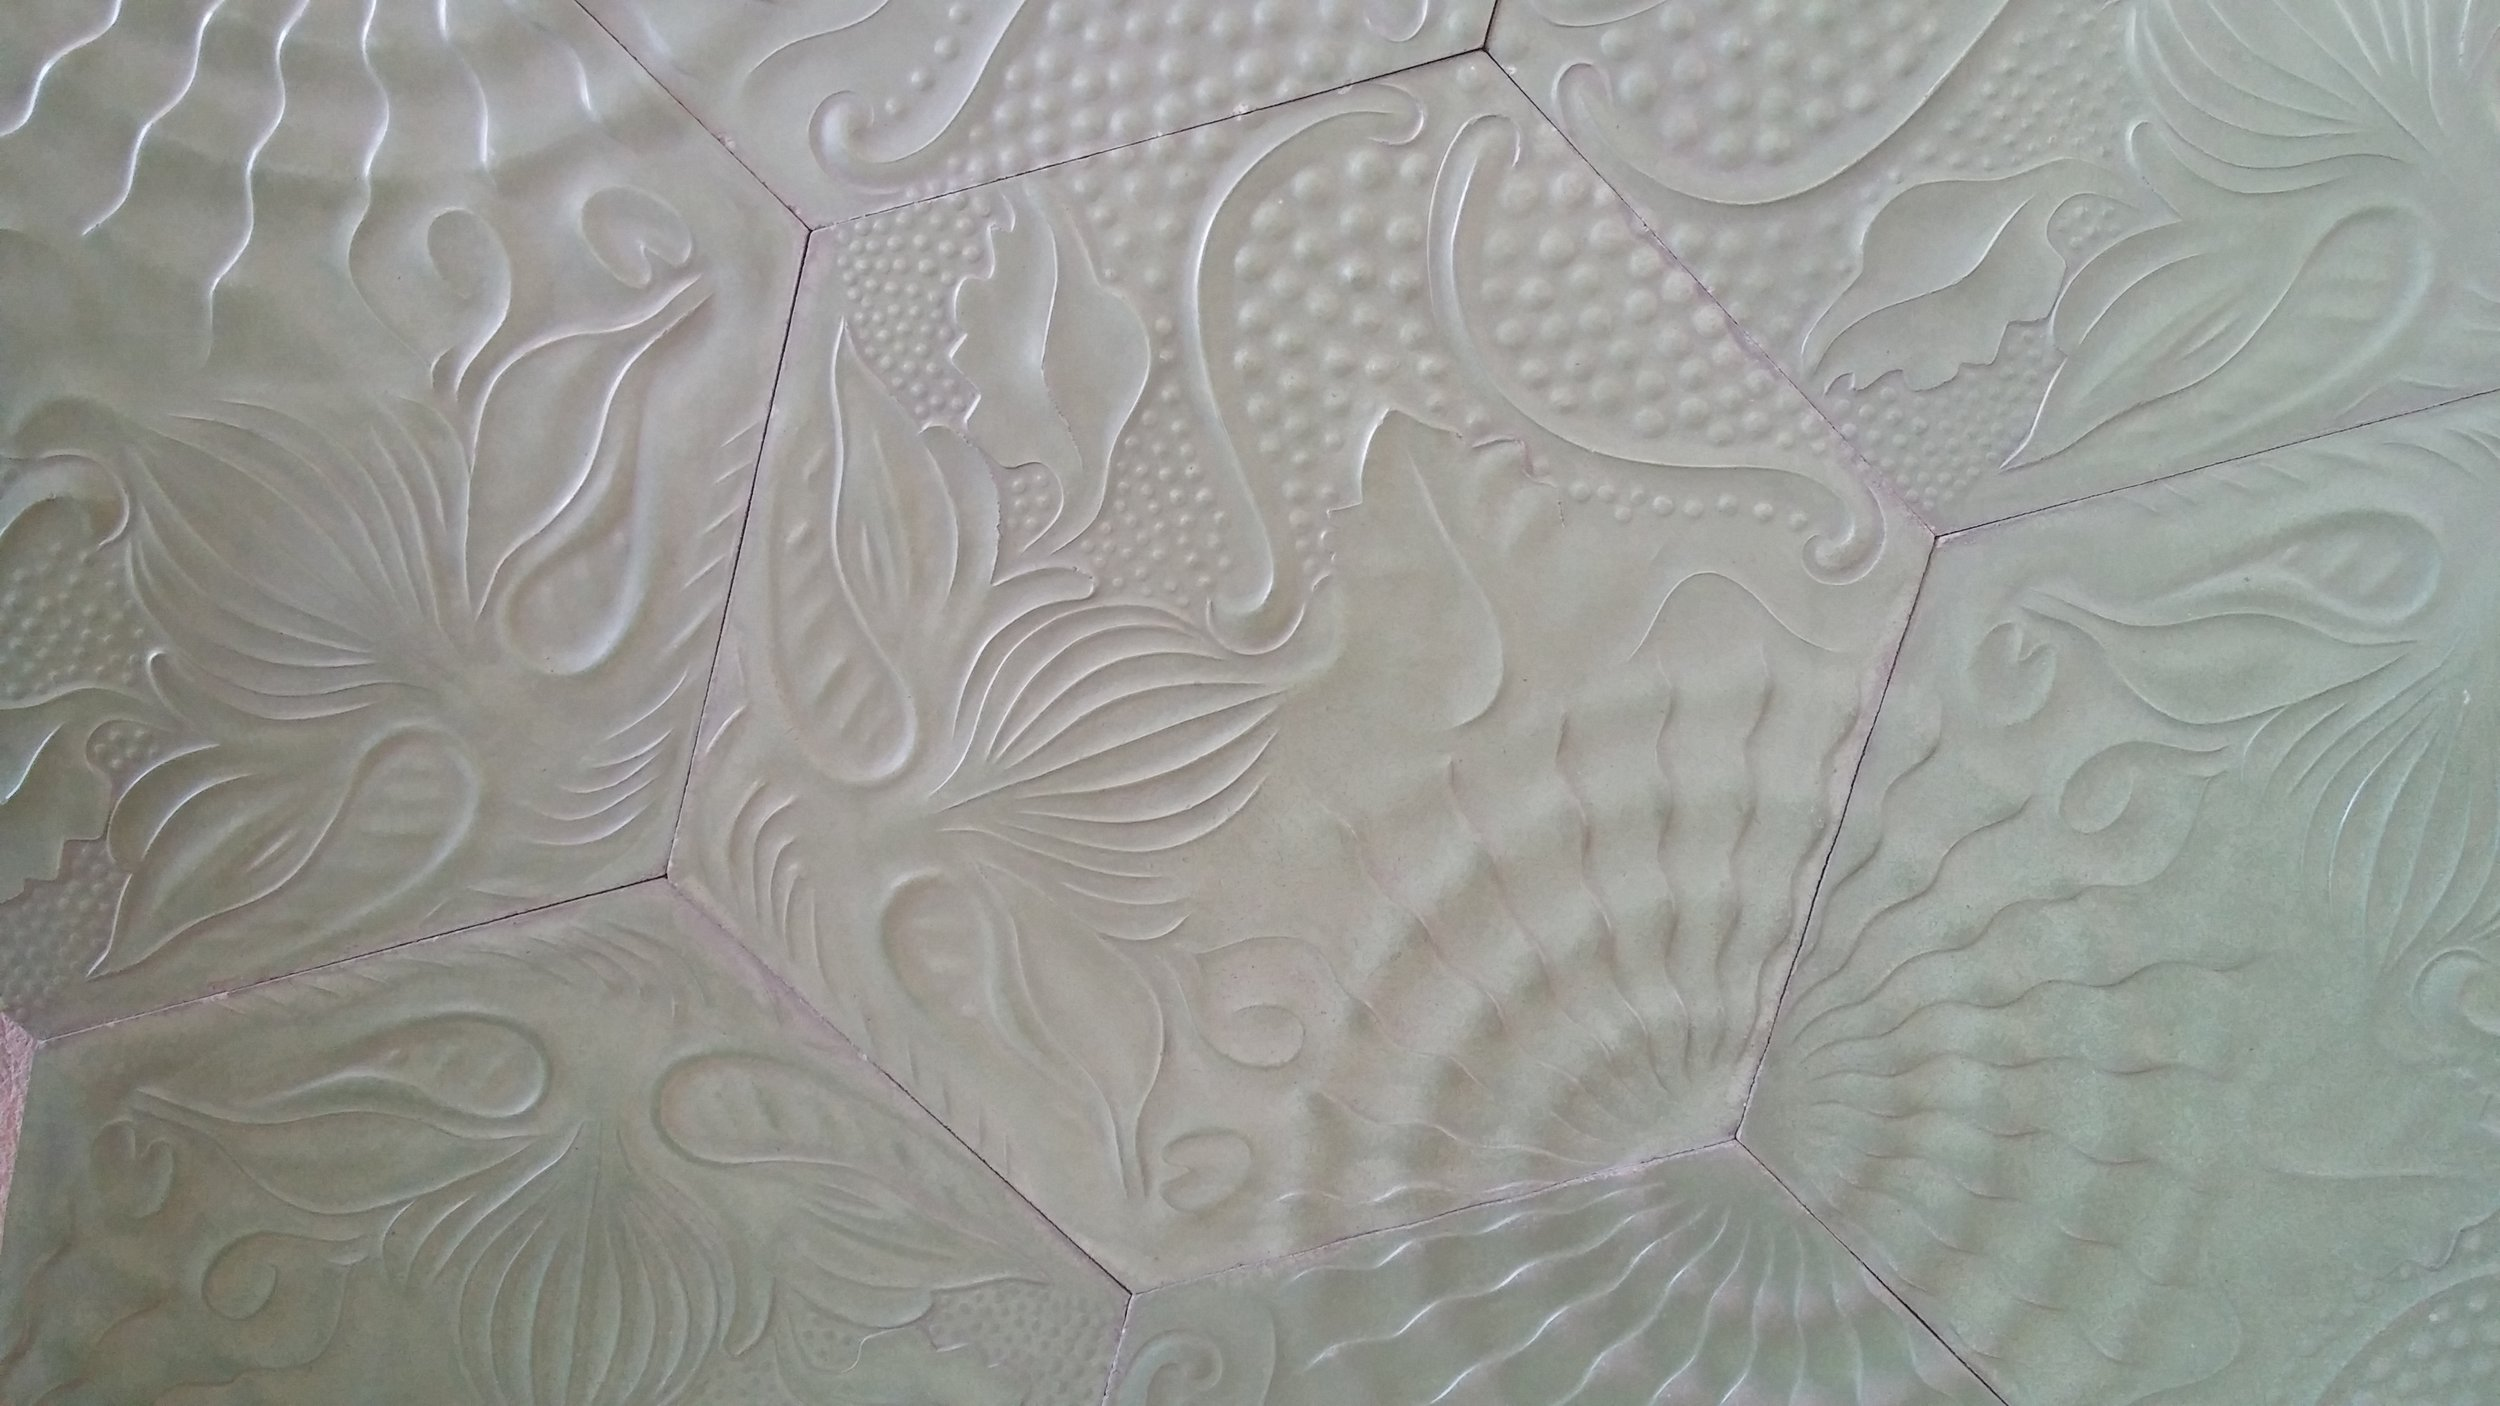 Nature and sealife motifs in the decorative tiles - Battlo